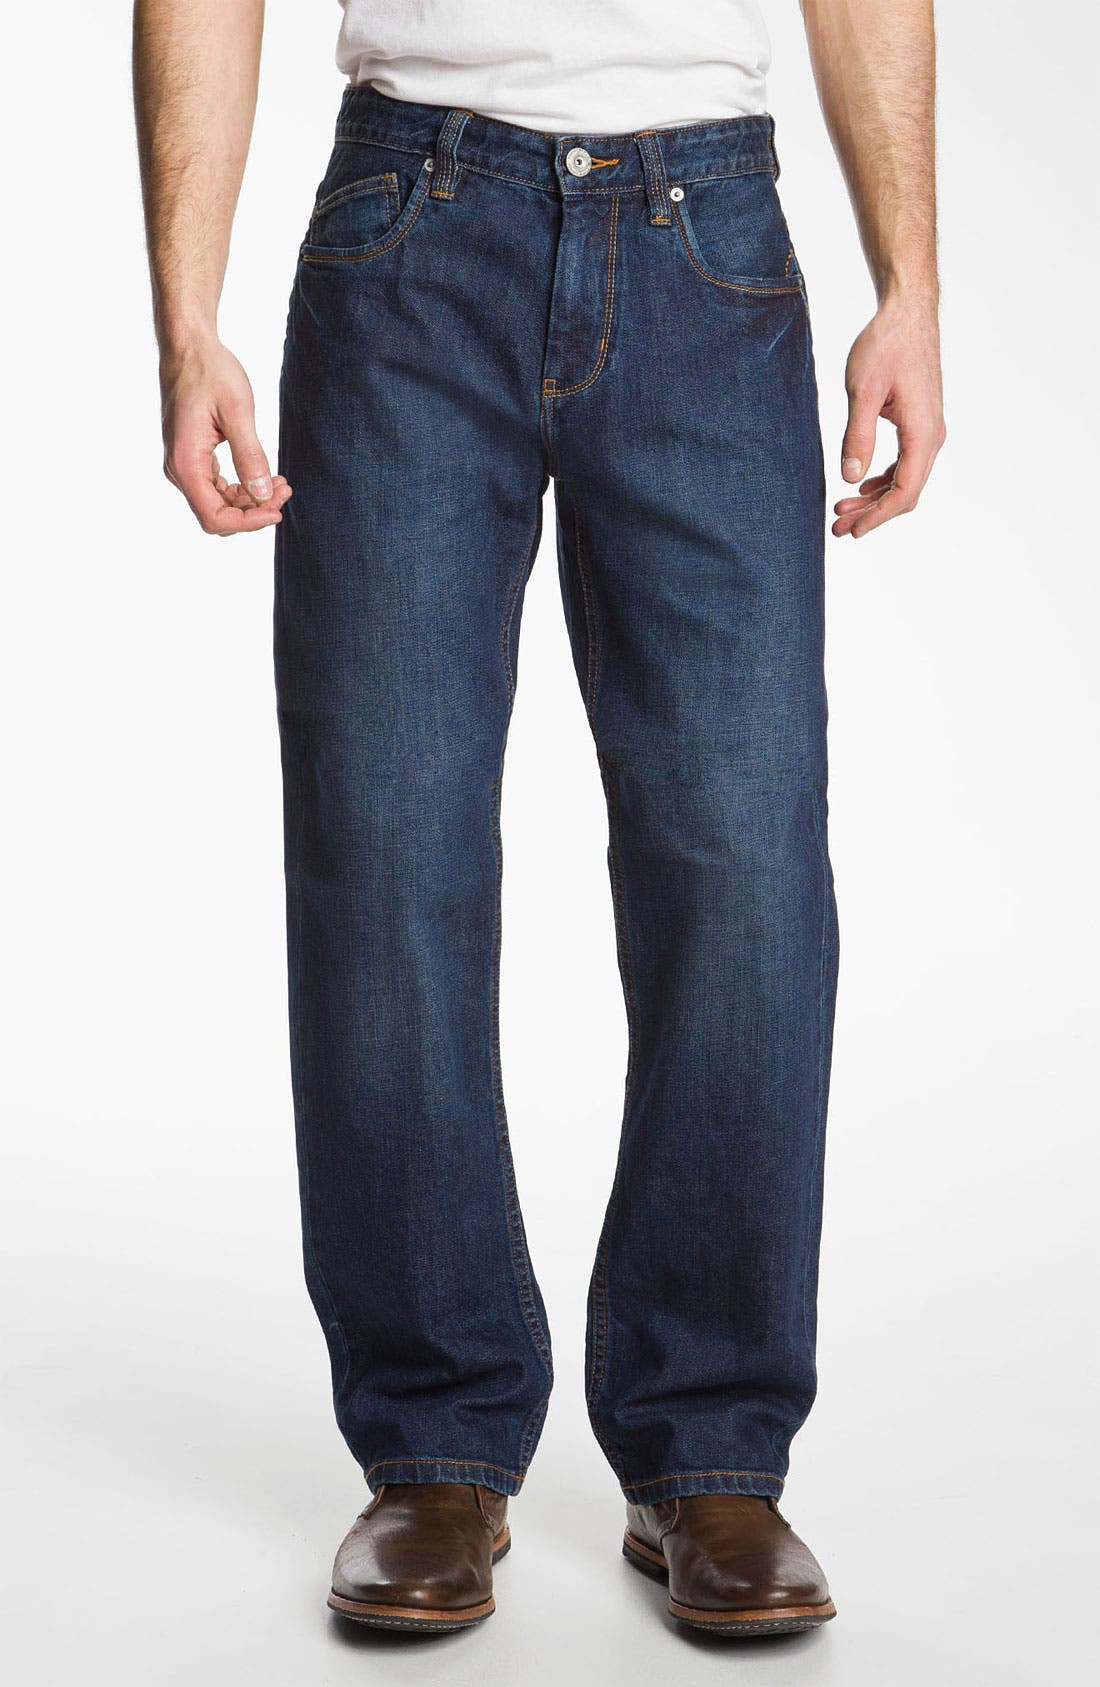 Alternate Image 1 Selected - Tommy Bahama Denim 'Steve Standard Fit' Jeans (Resin)